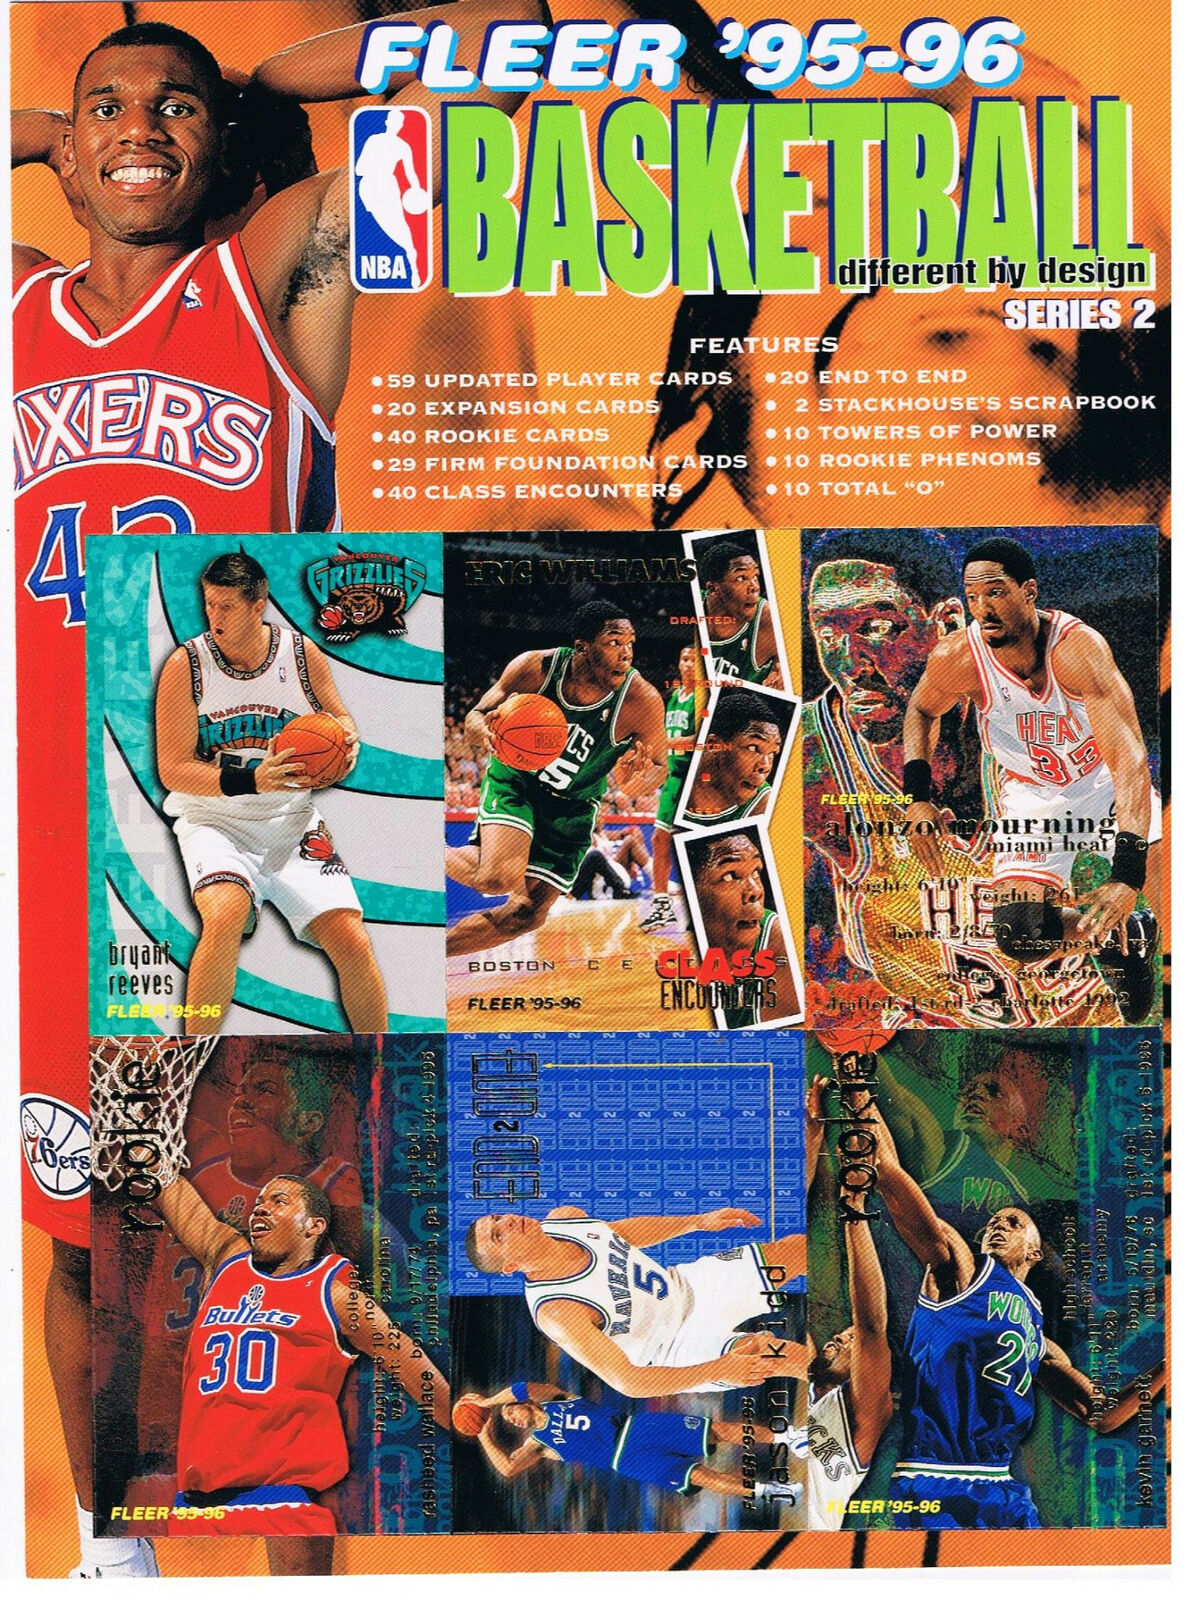 Fleer Basketball Ad 95-96 Series 2 6 Cards Attached - $1.56